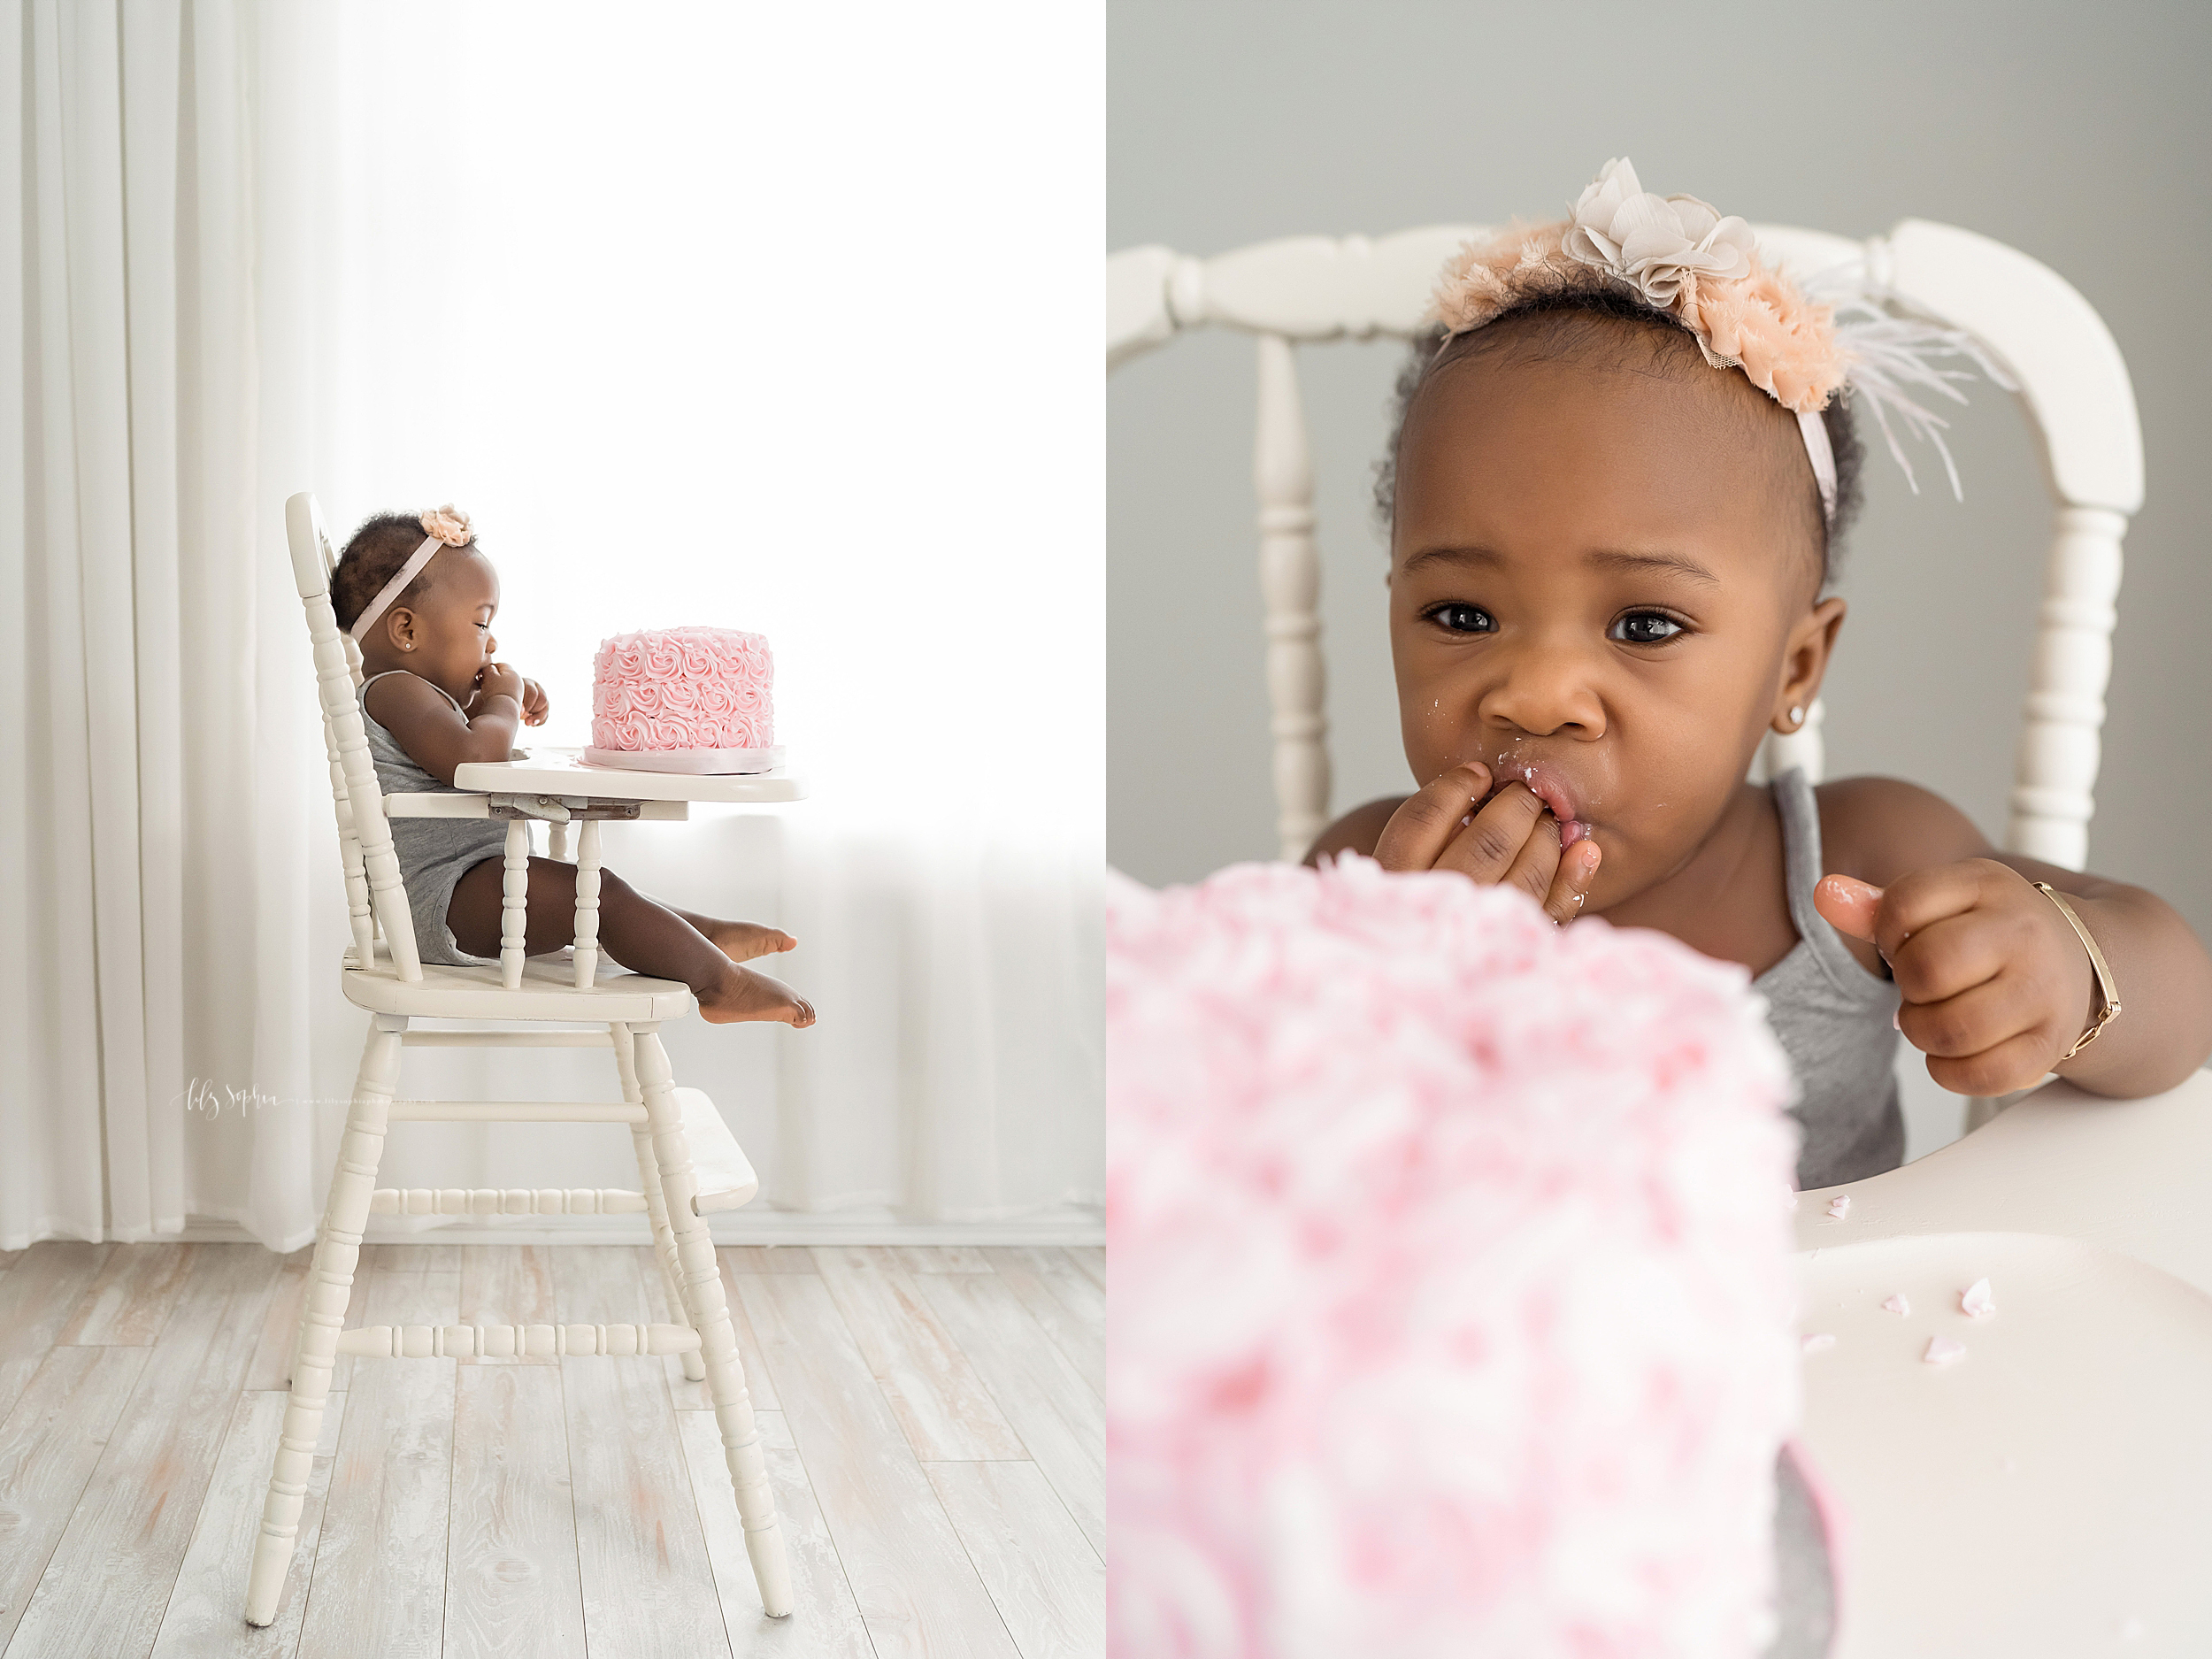 atlanta-decatur-candler-park-sandy-springs-buckhead-virginia-highlands-west-end-decatur-lily-sophia-photography-studio-one-year-old-baby-girl-first-birthday-cake-smash-toddler-big-brother-family-parents-session_1880.jpg